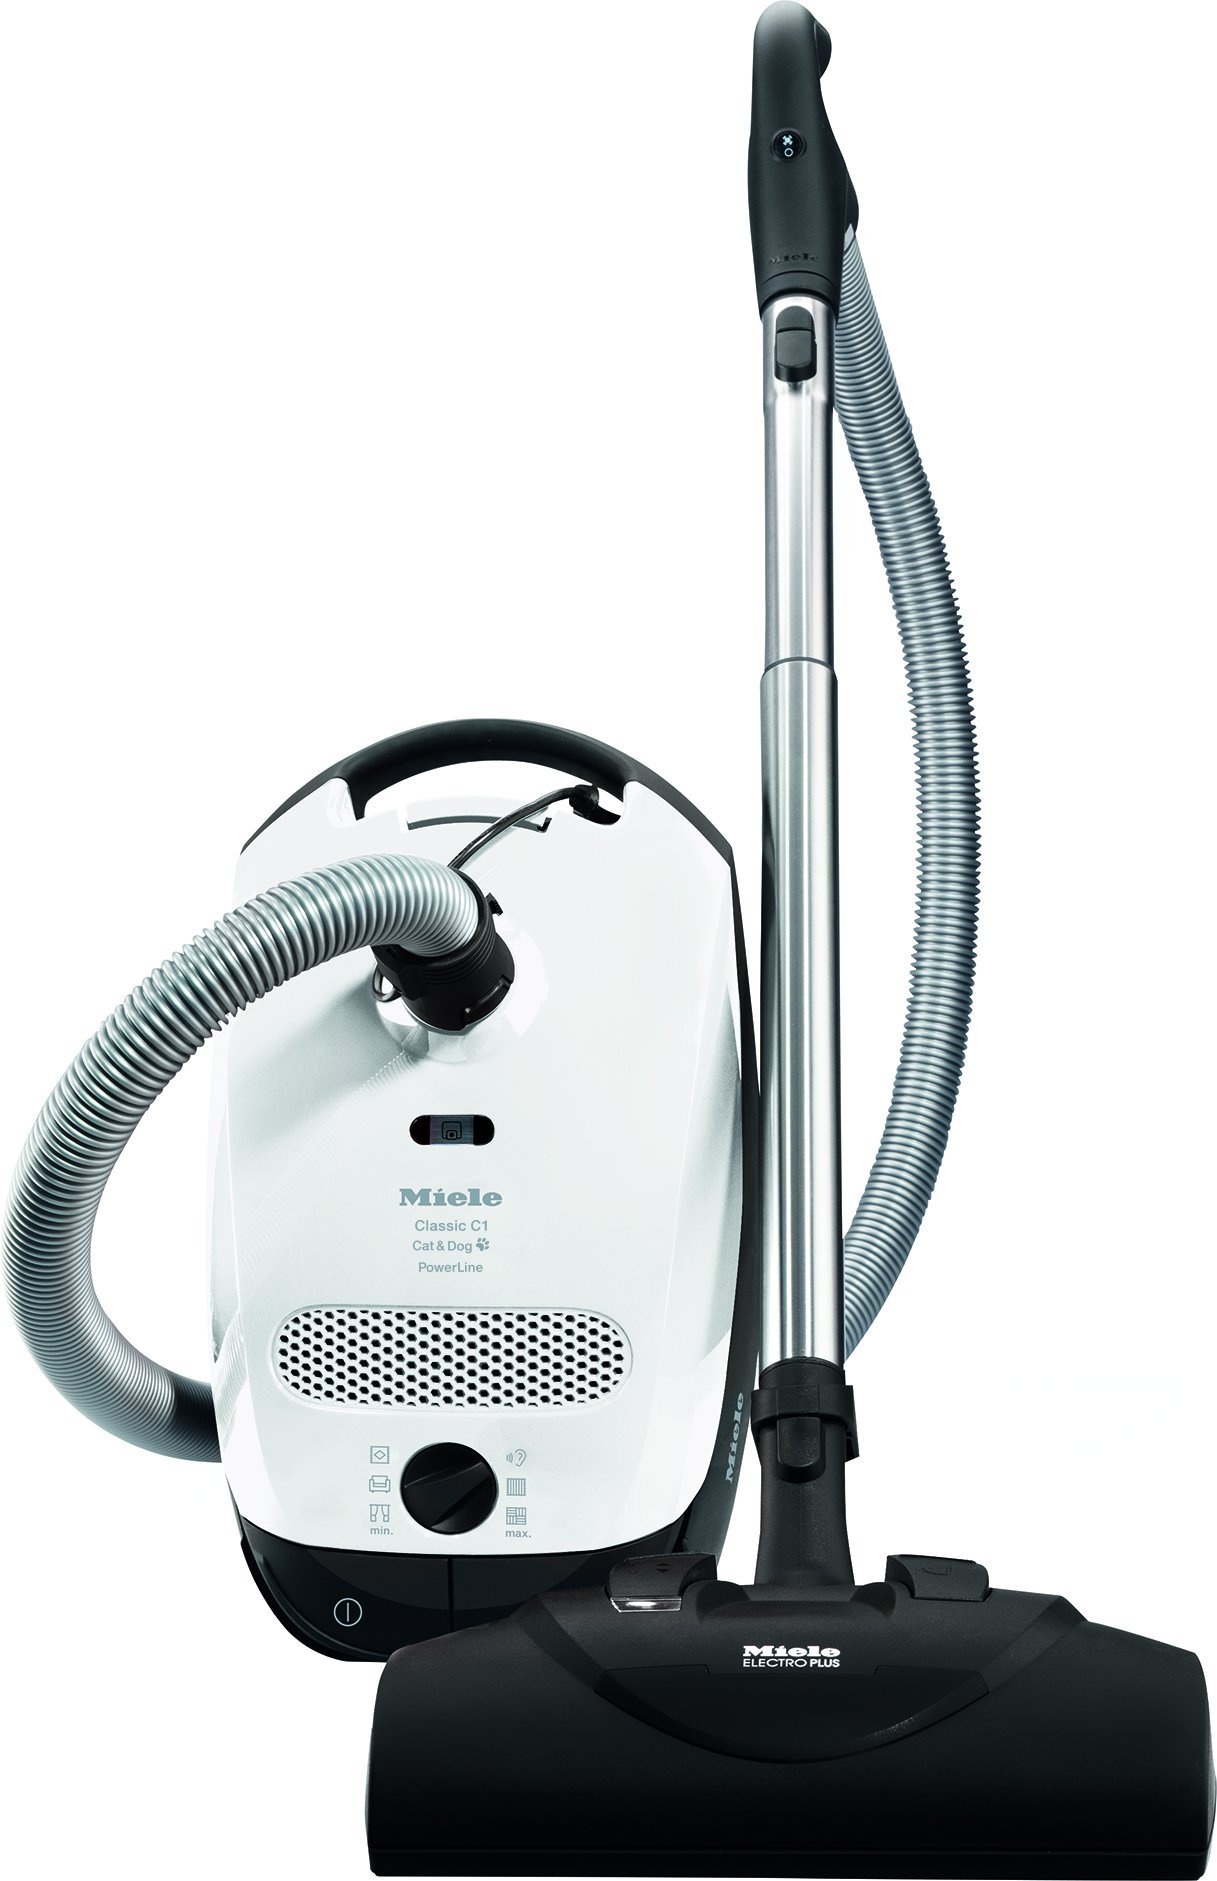 Miele Classic C1 Cat & Dog Canister Vacuum Cleaner by Miele